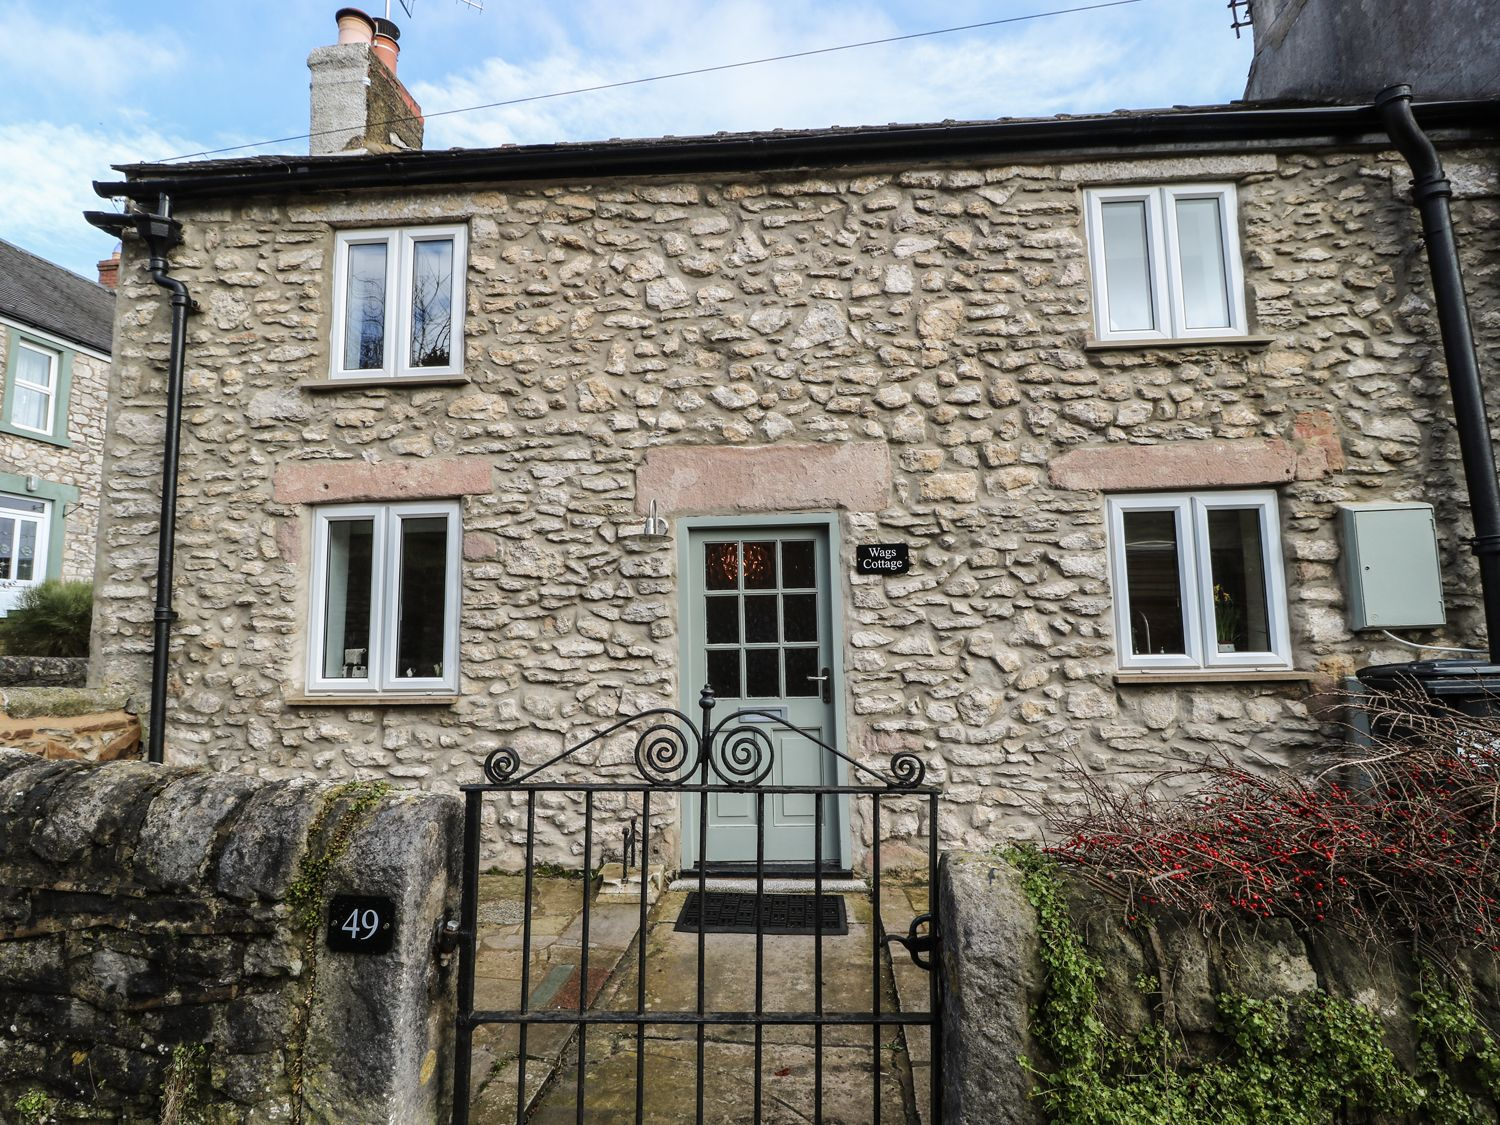 Wags Cottage in Middleton near Matlock - sleeps 3 people